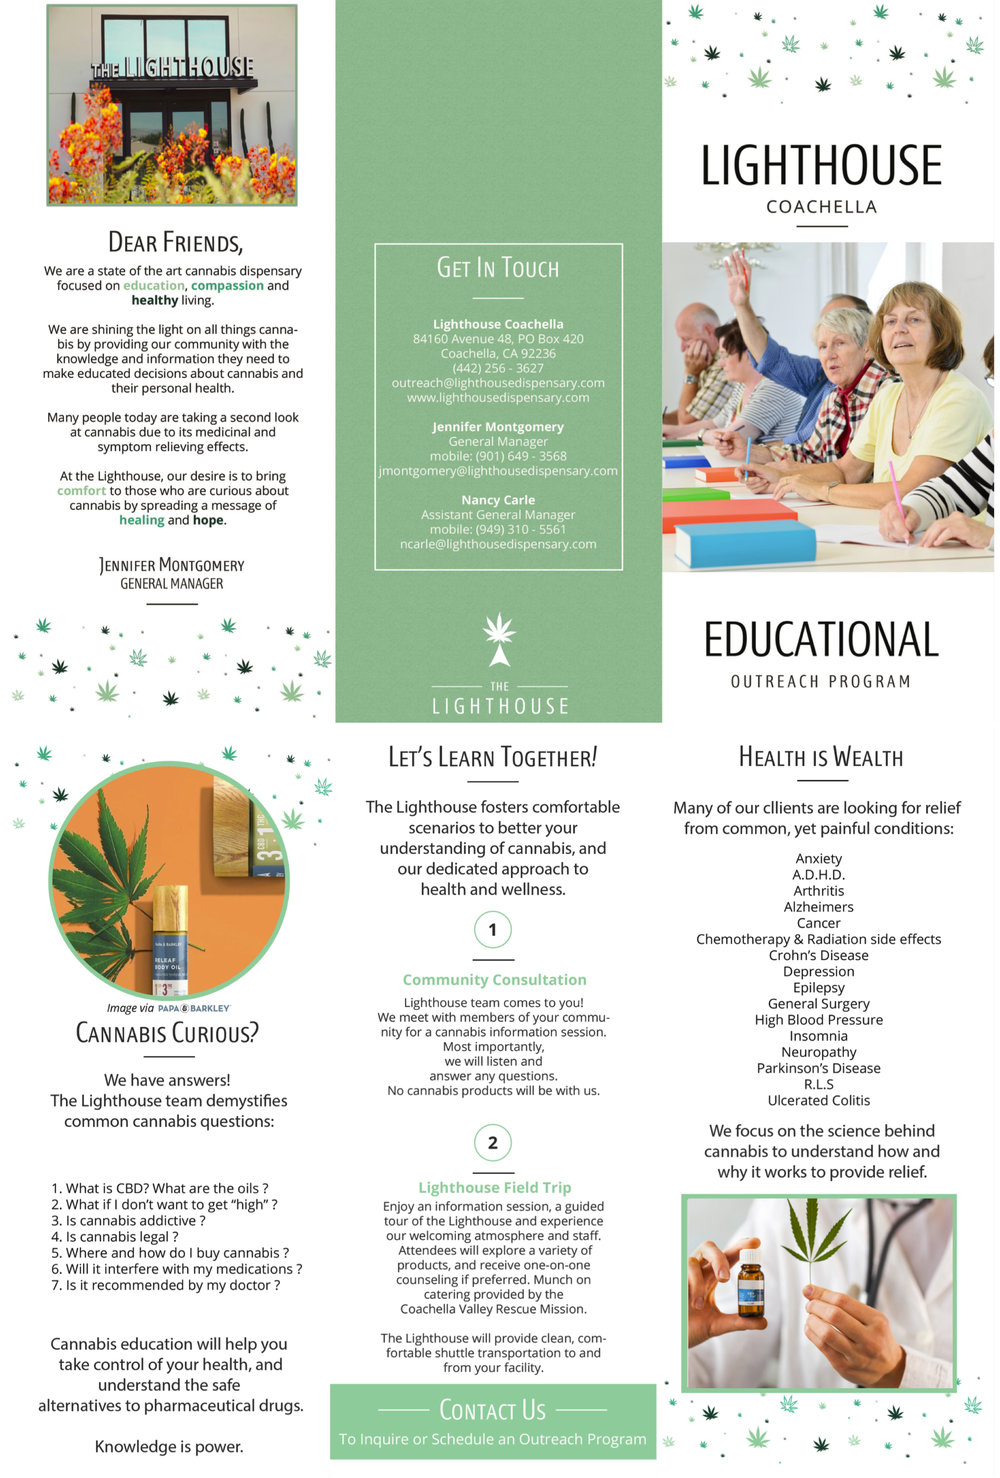 choose enlightenment - Download our Educational Outreach Brochure to learn more